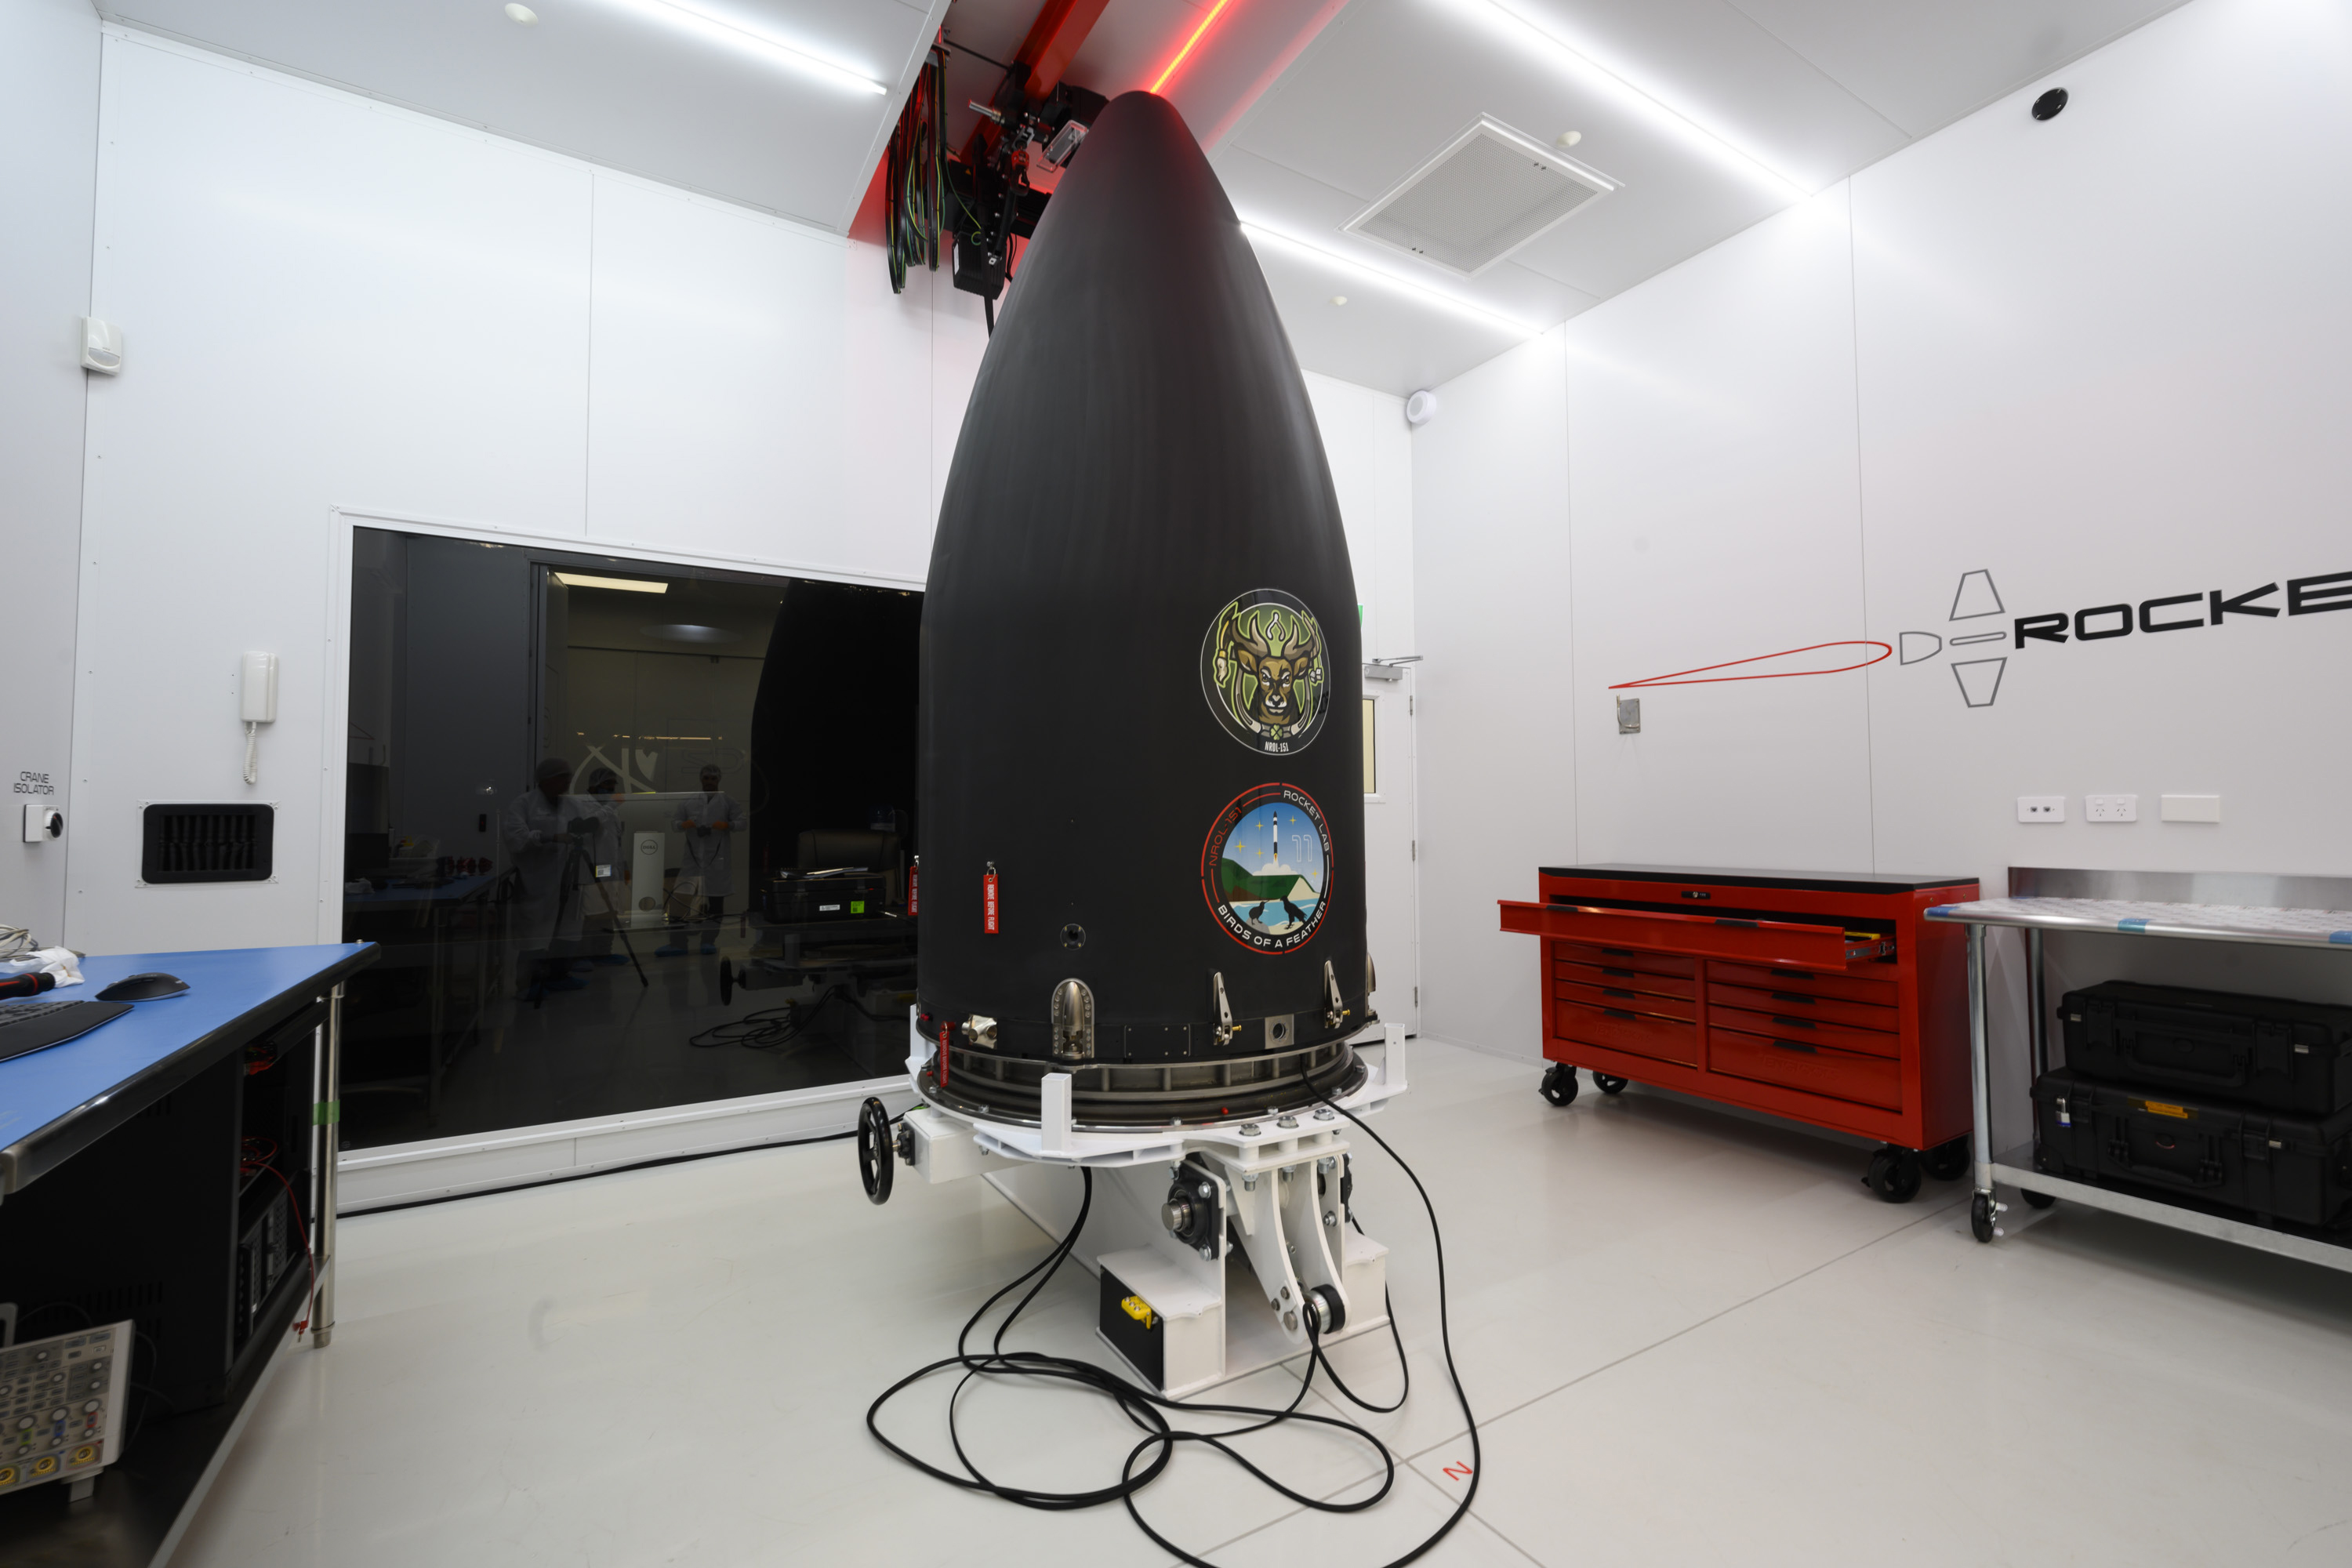 The small satellite launch company Rocket Lab will launch the clandestine NROL-151 satellite for the U.S. National Reconnaissance Office as early as Jan. 31, 2020 local New Zealand time (Jan. 30 EST).